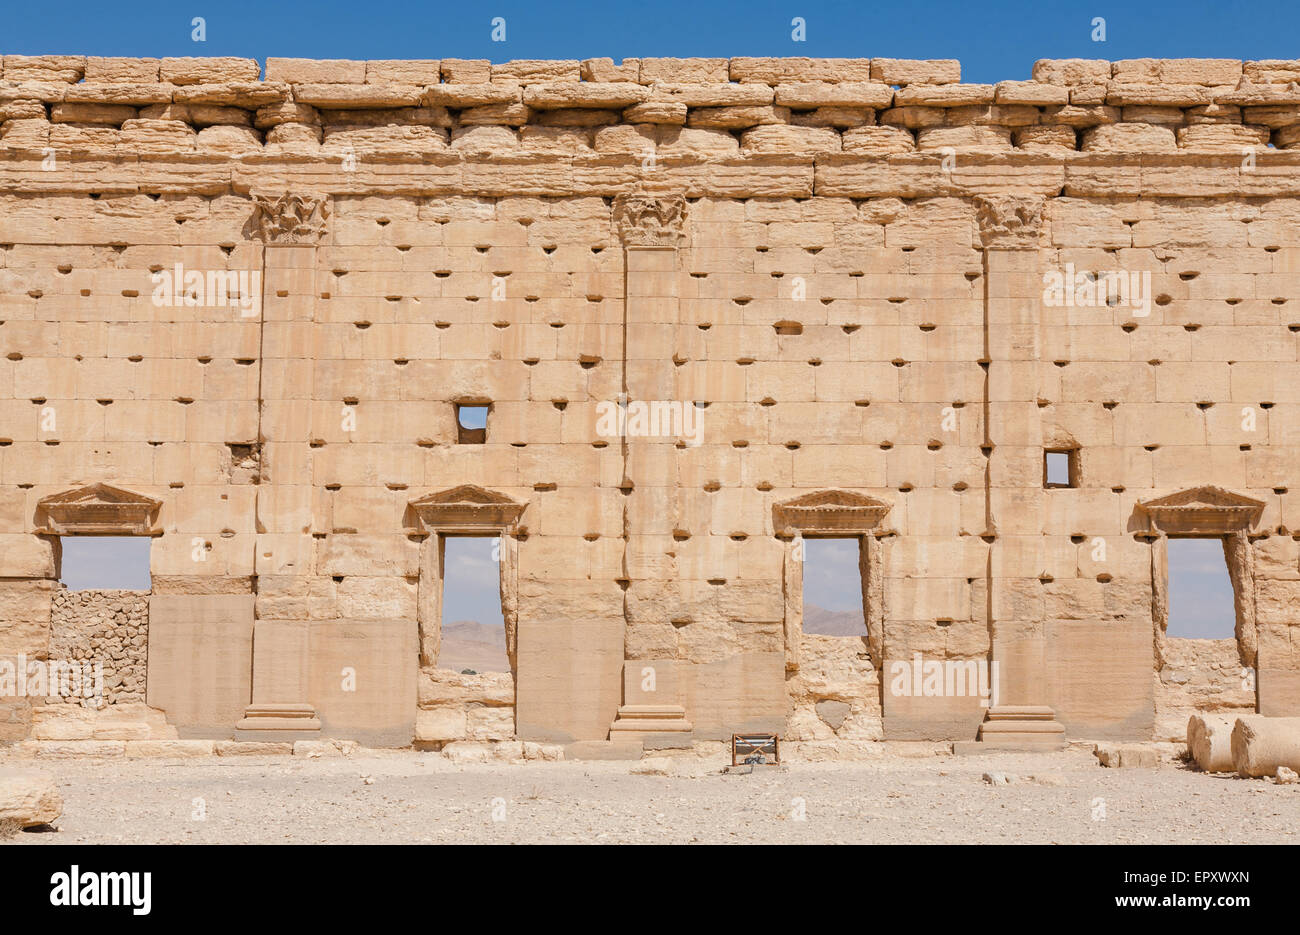 The outer wall of the temple courtyard - Stock Image